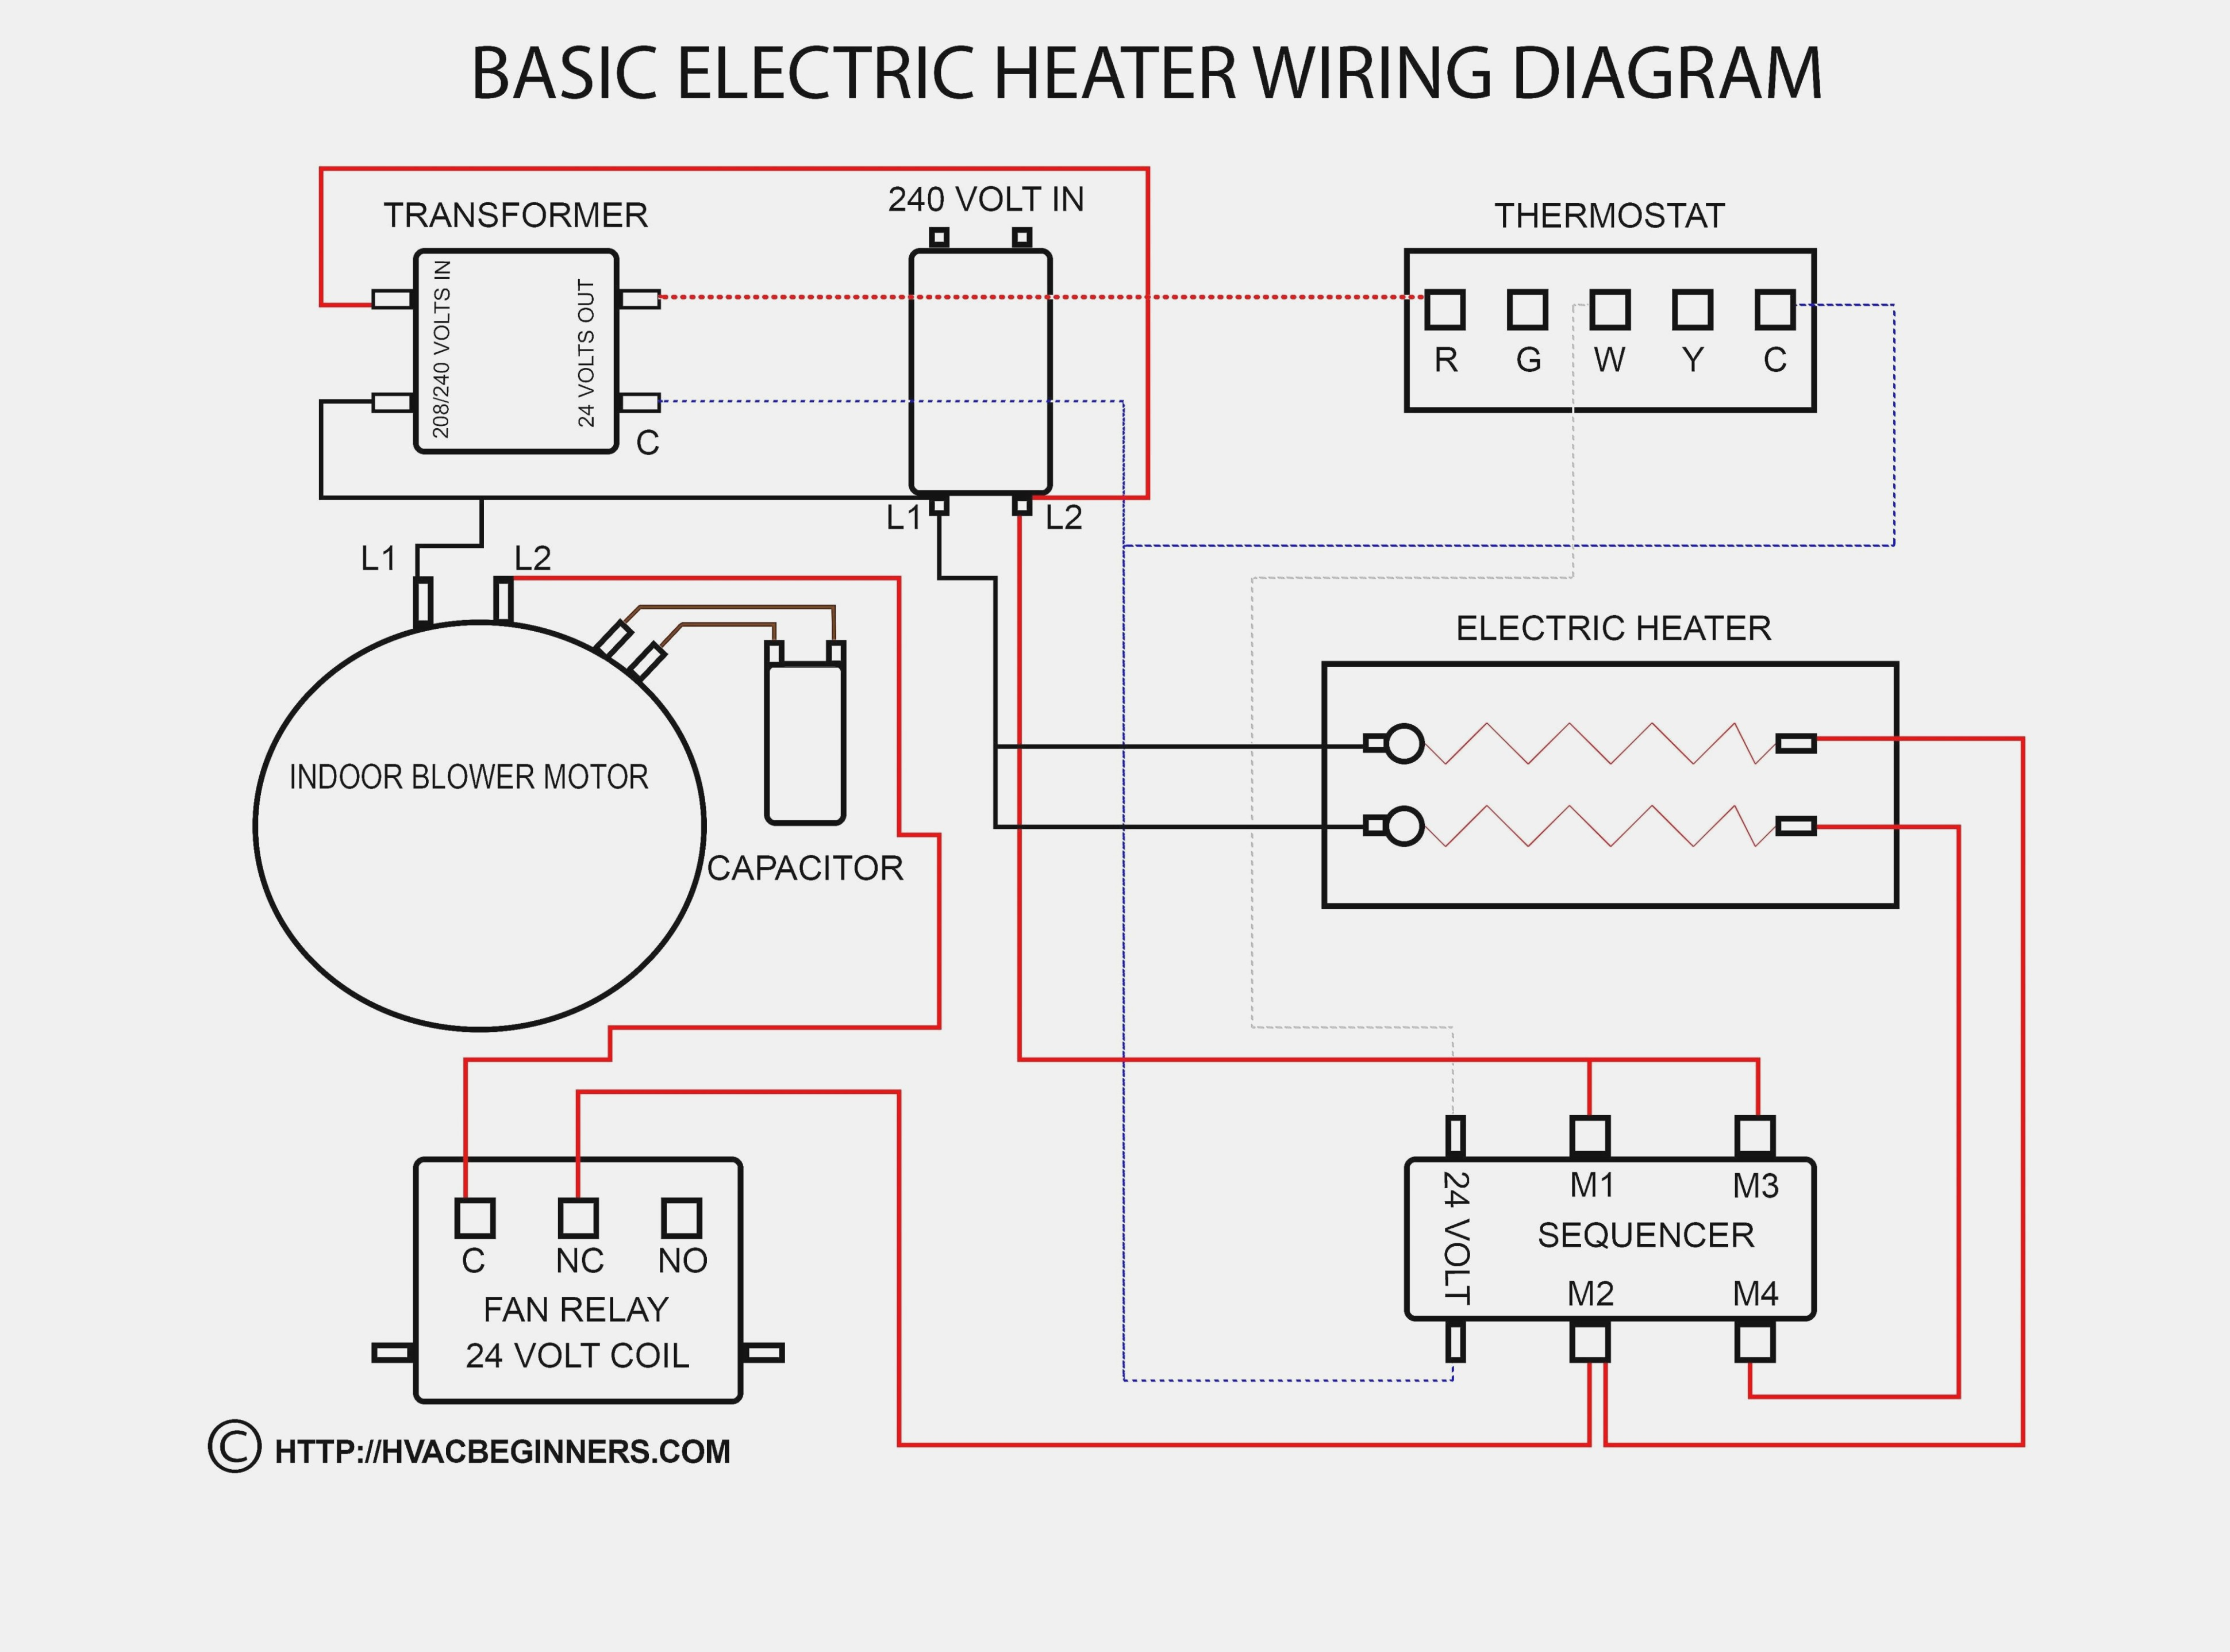 Electric Heat Wiring Diagram Wiring Diagram for Electric Heat Unit Get Free Image About Wiring Of Electric Heat Wiring Diagram